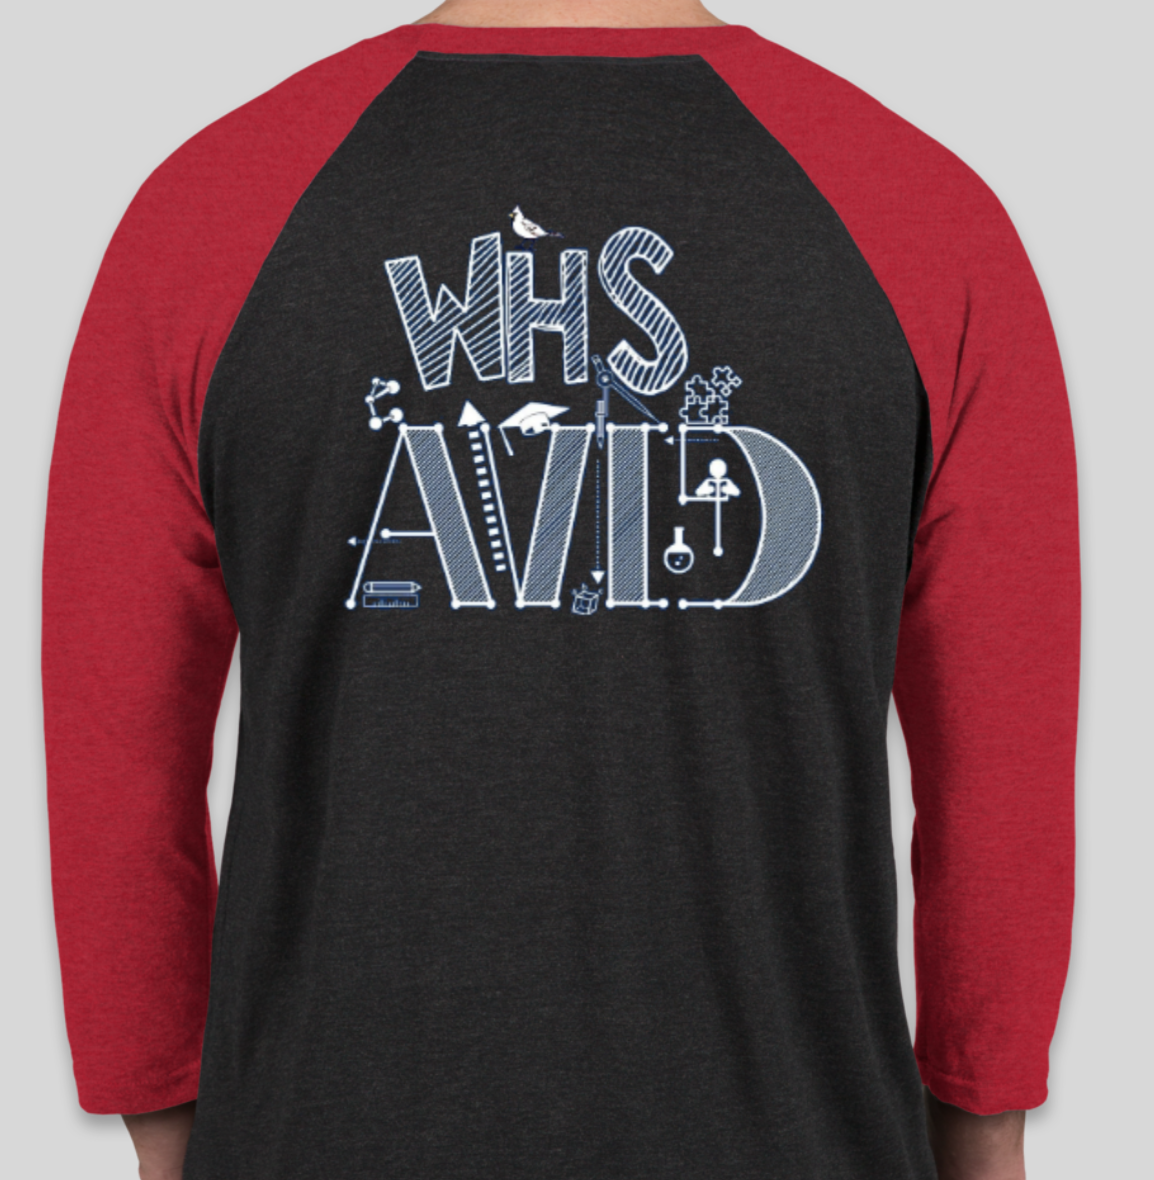 Back view of AVID Baseball T-Shirt. Black shirt with red 3/4 sleeves with the word 'WHS AVID' on the front.